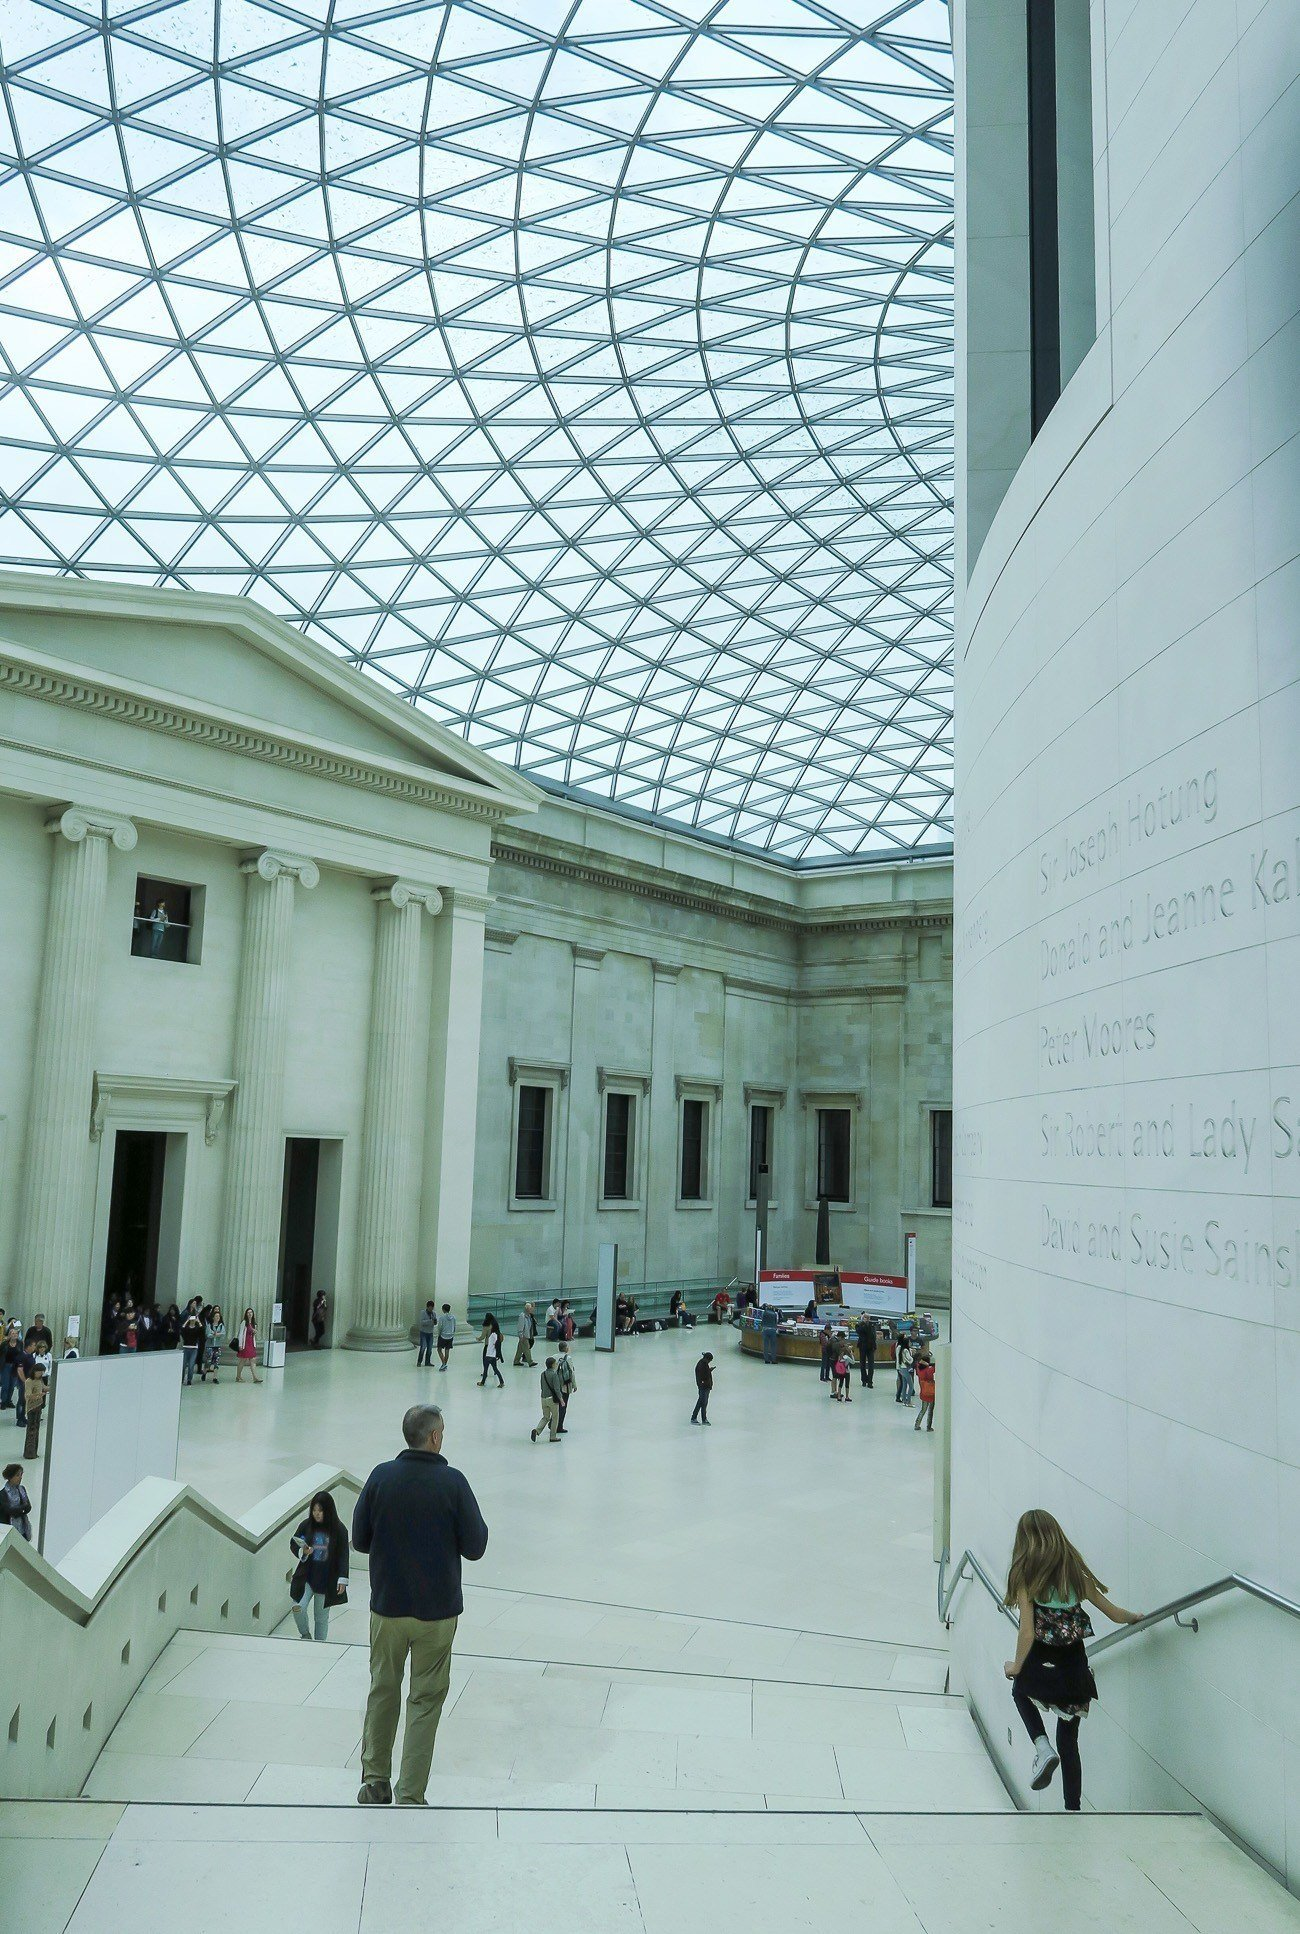 The British Museum is a must-visit attraction when on vacation in London